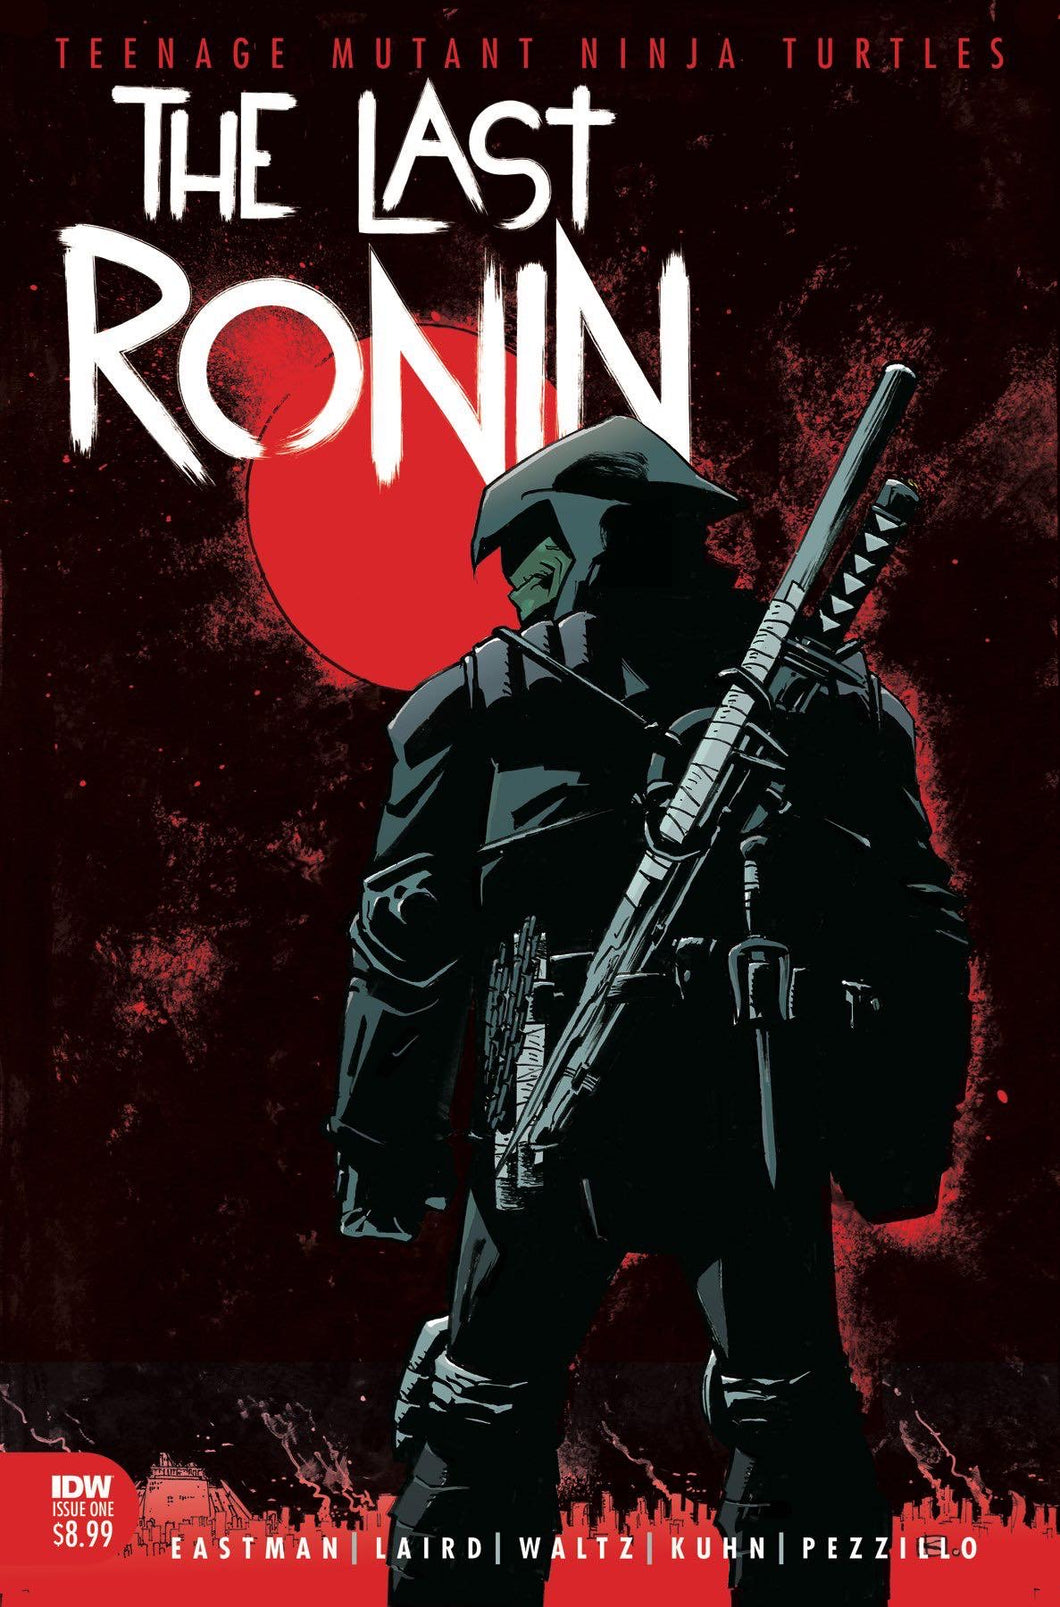 [PRE-ORDER] IDW Comics - TMNT - The Last Ronin #1 (of 5) Cover A